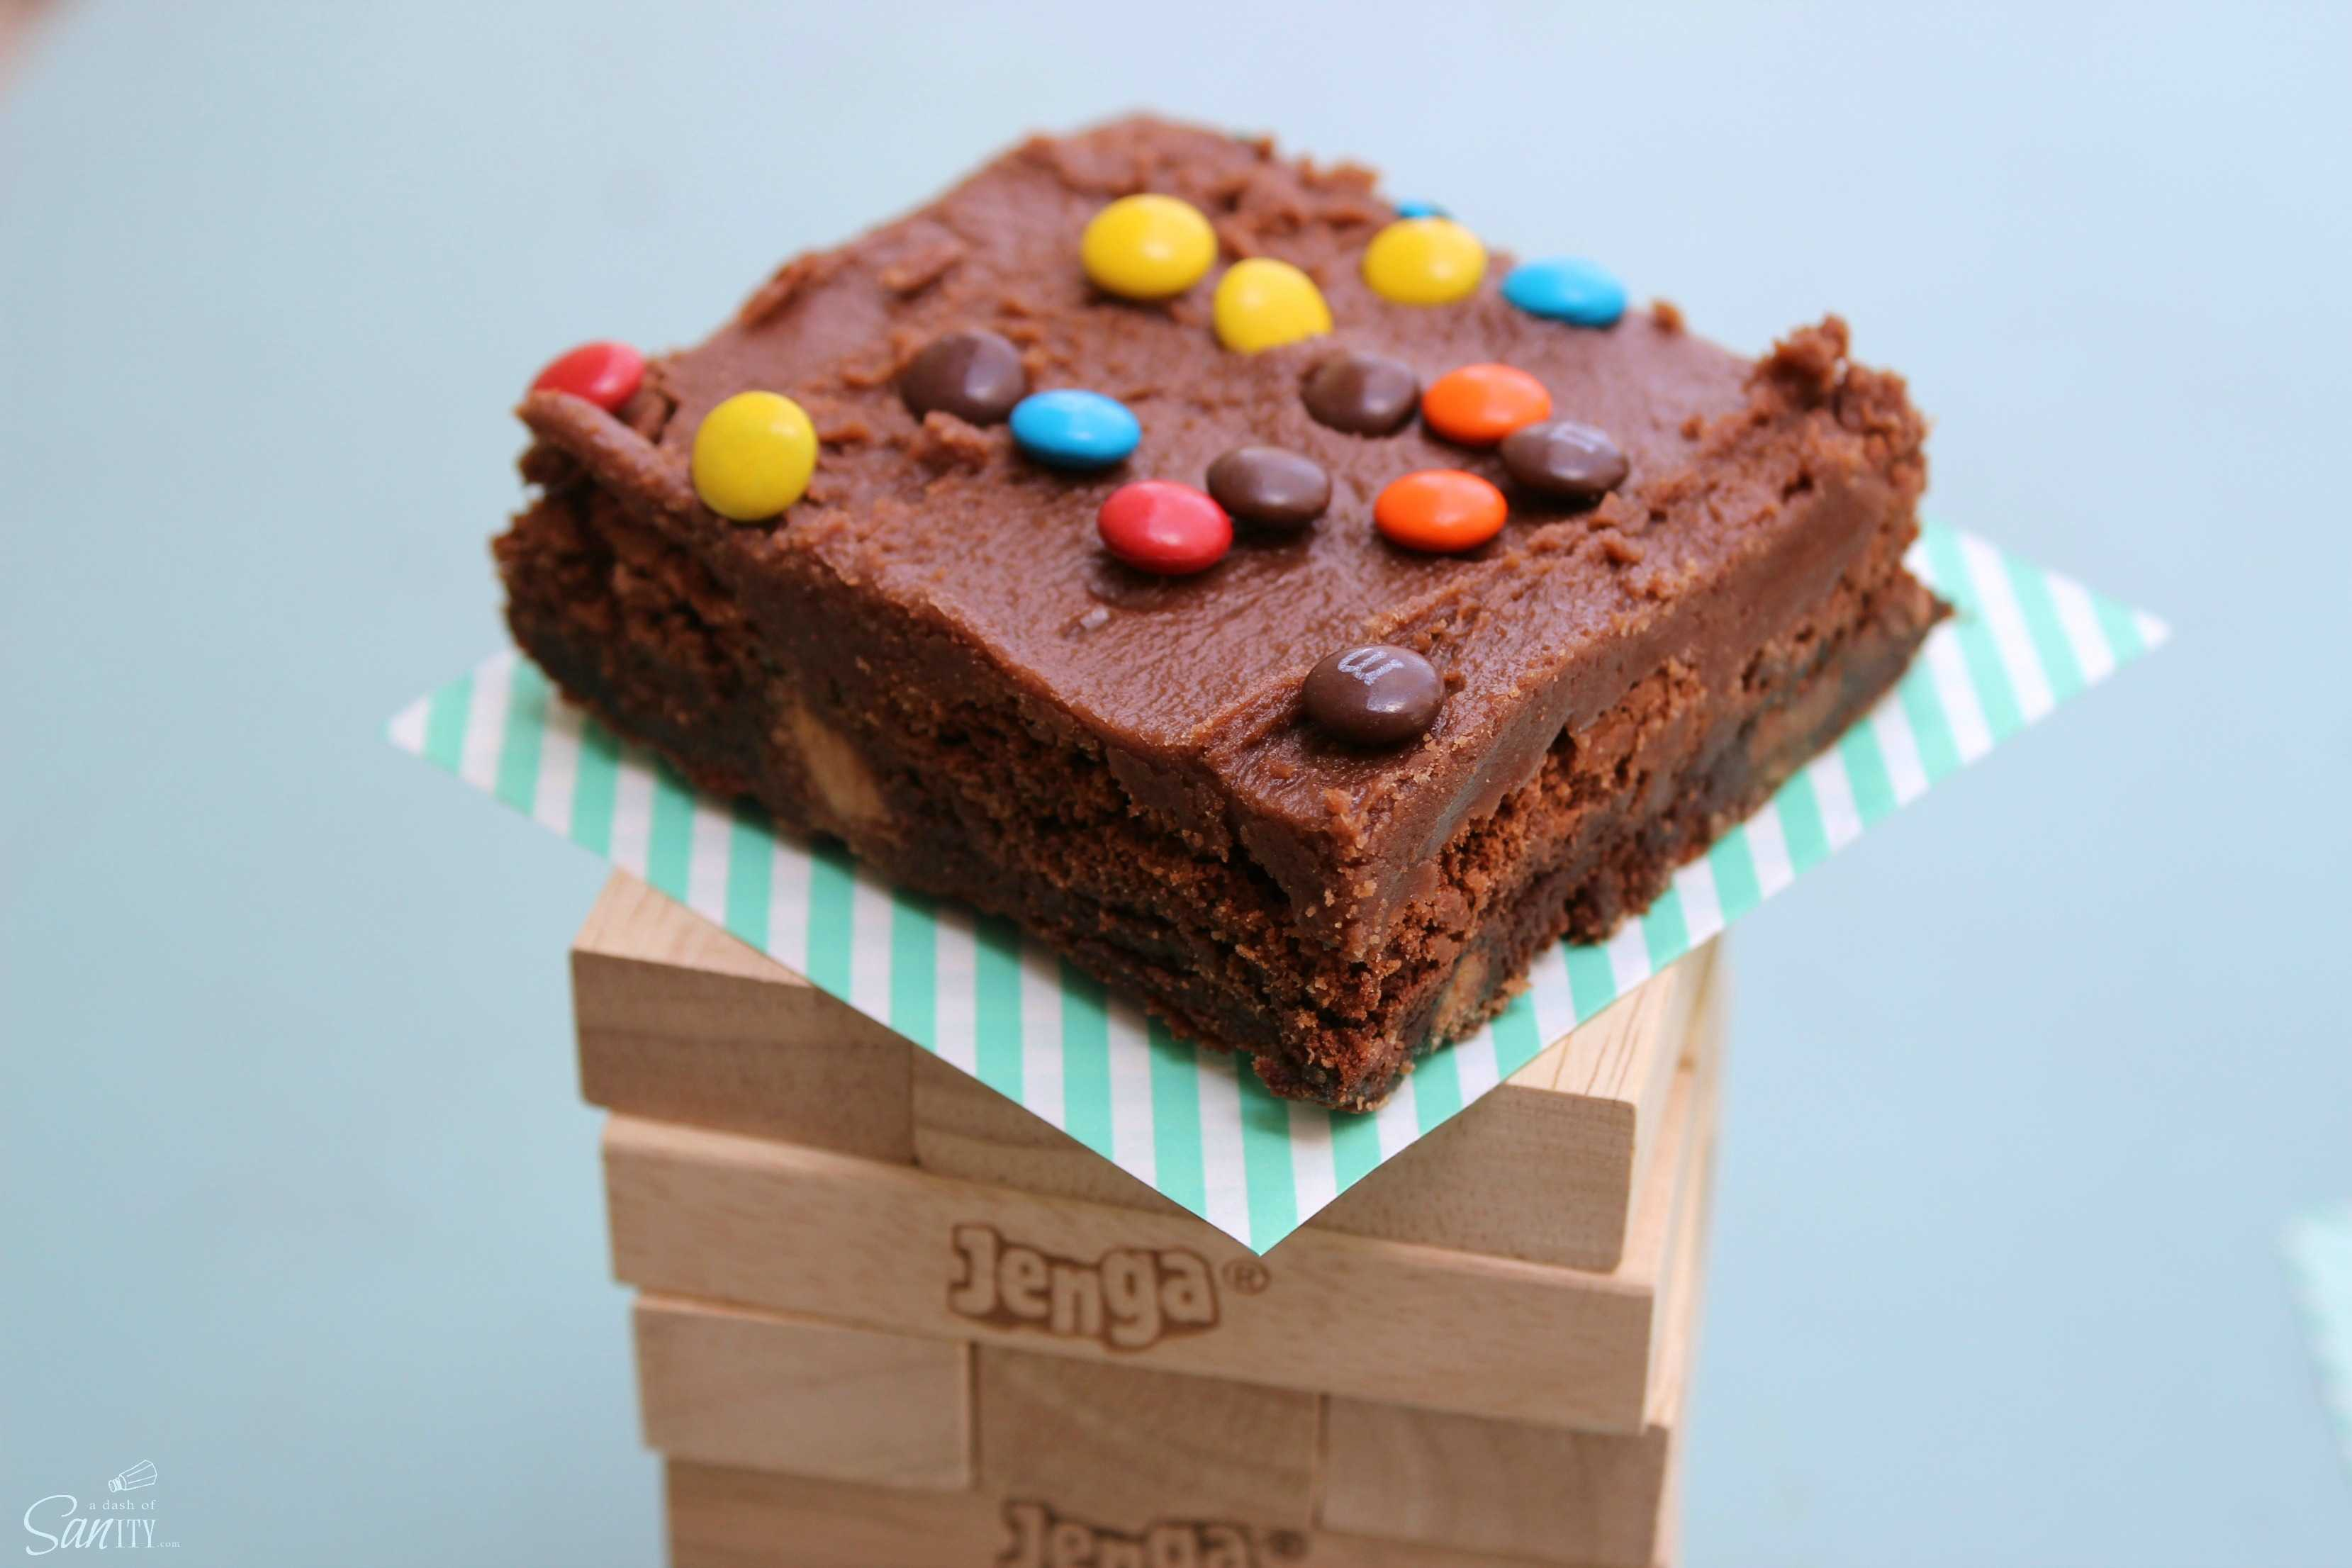 Millionaire Brownies are a double-chocolate brownie loaded with creamy peanut butter and pretzel M&M's®. You get all of your favorite snack treats in one.